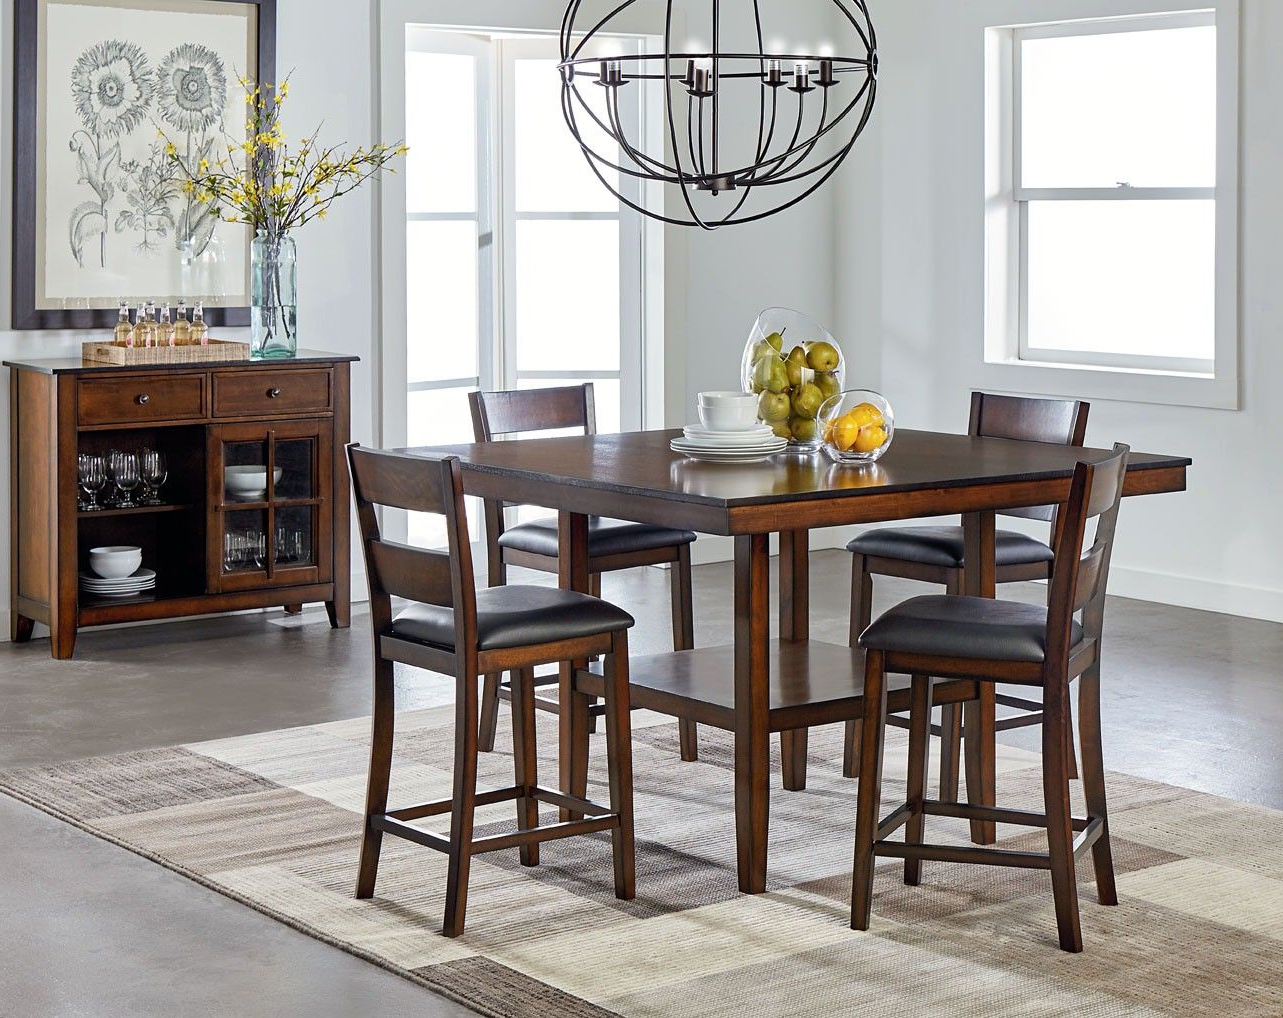 Pineville Dining Sideboards In 2020 Pendwood Dark Merlot Cherry Counter Height Dining Room Set (View 8 of 20)